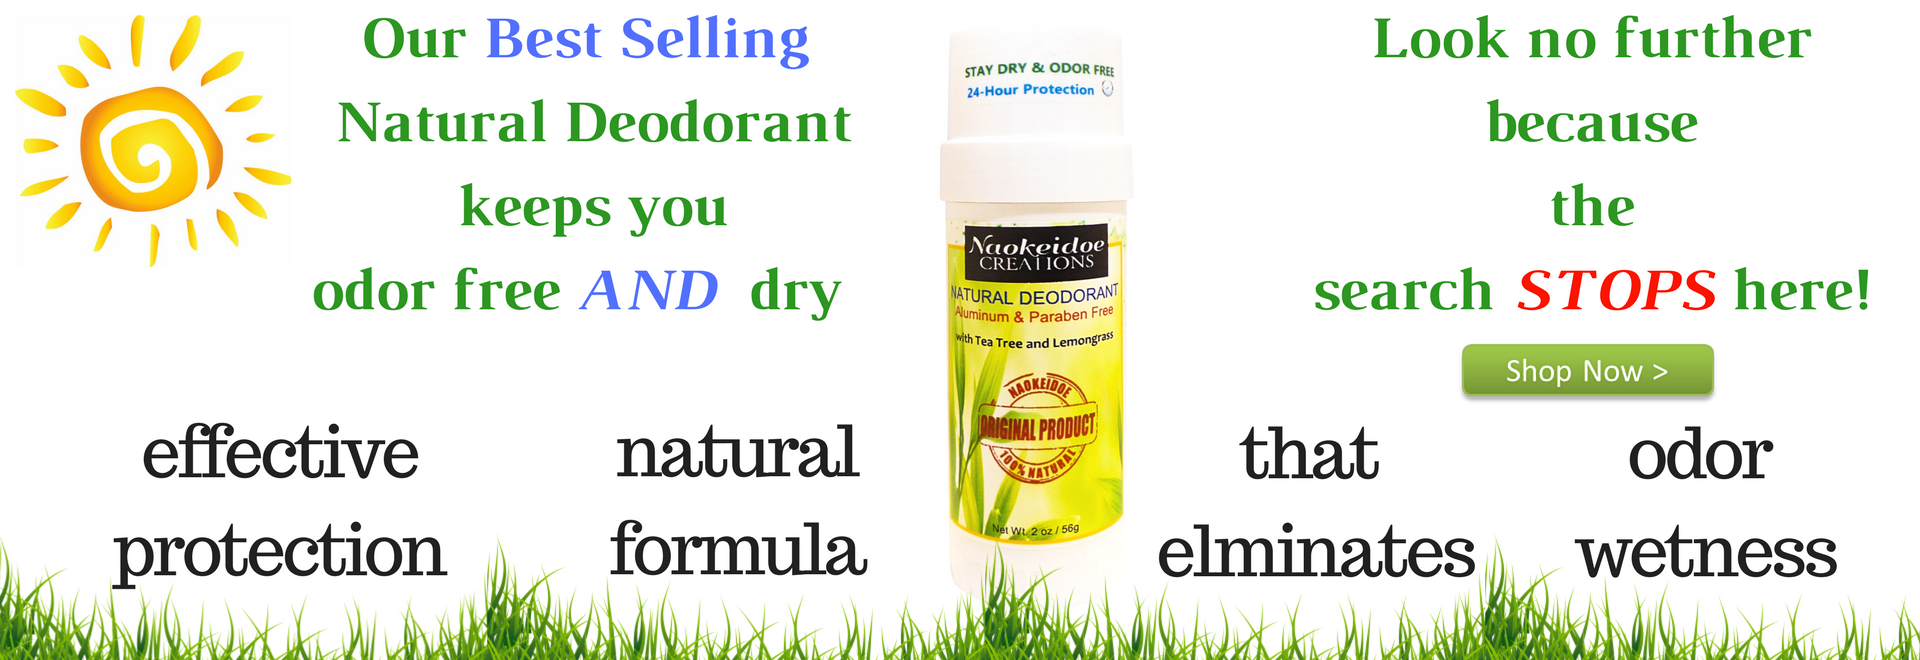 Naokeidoe Creations Natural Deodorant